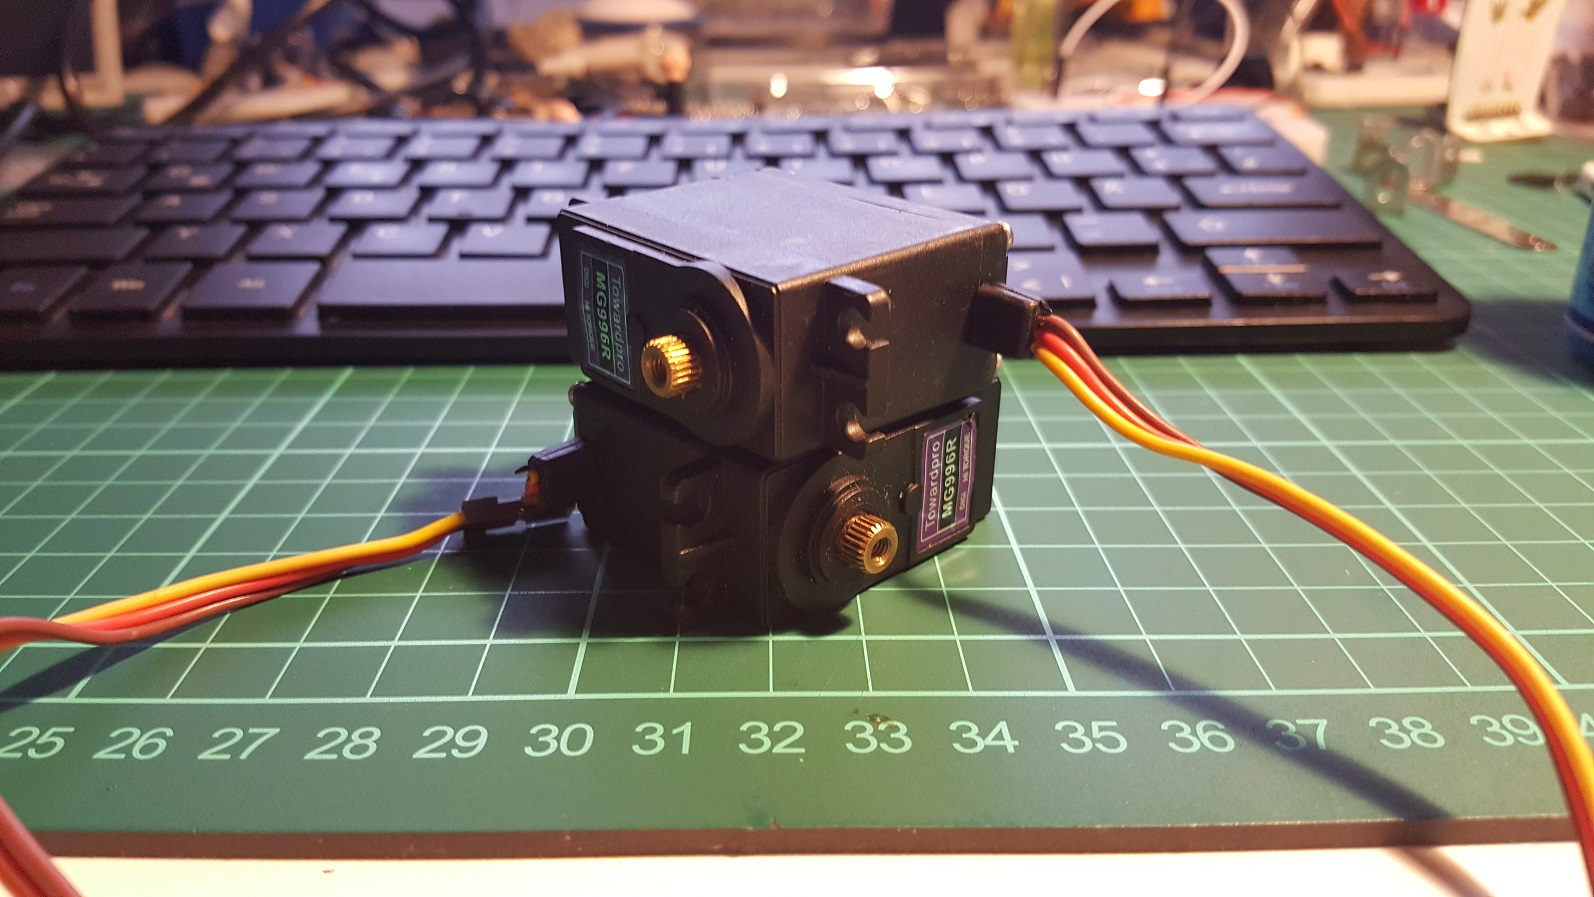 orienting two servos for 2 DoF